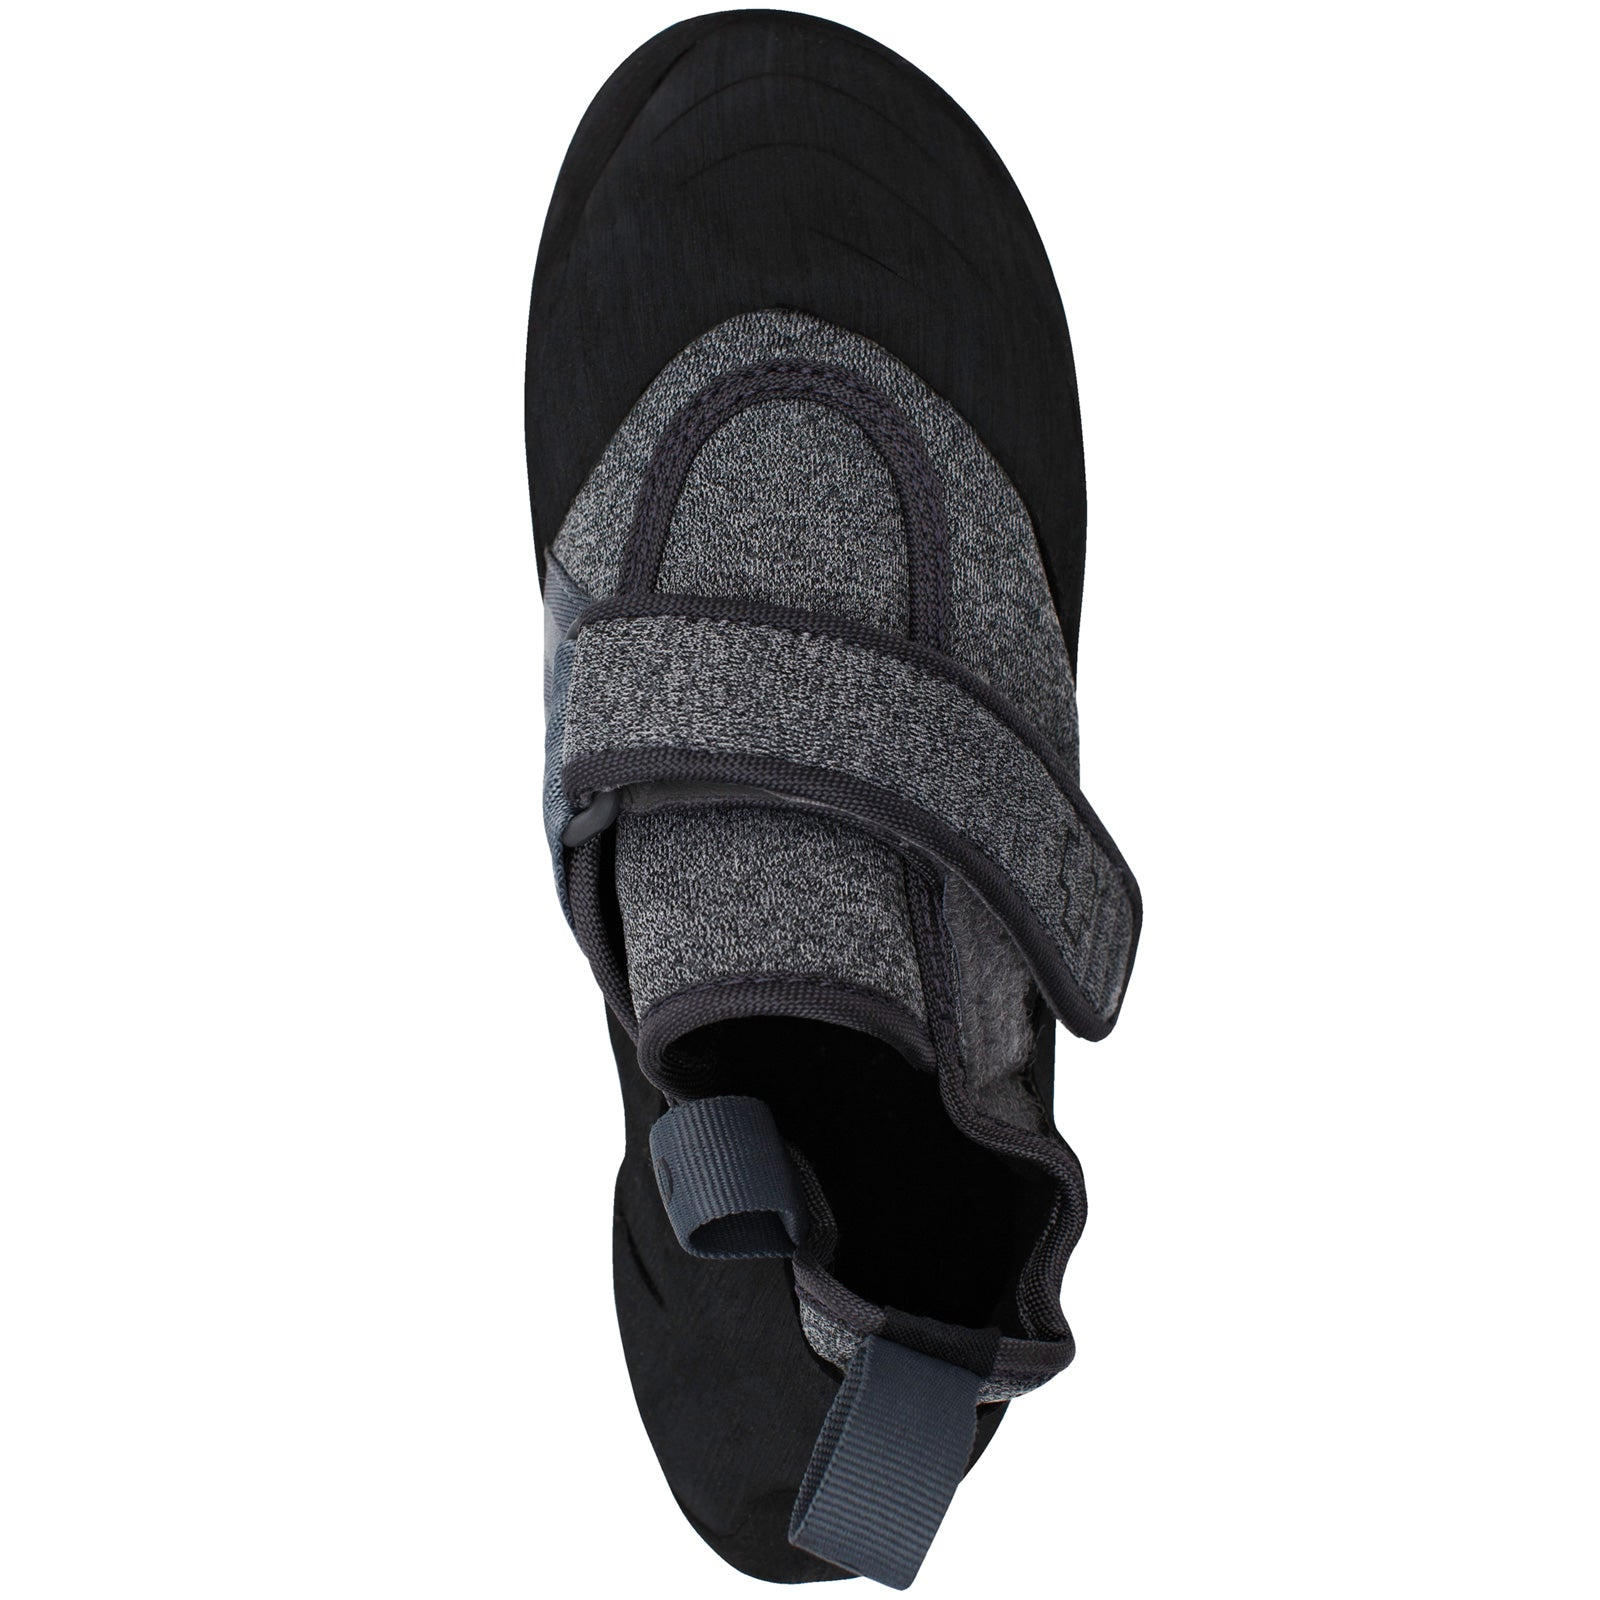 iLL Matter Rubber Shoes Climbing Dark So featuring 0y8wmnOvN